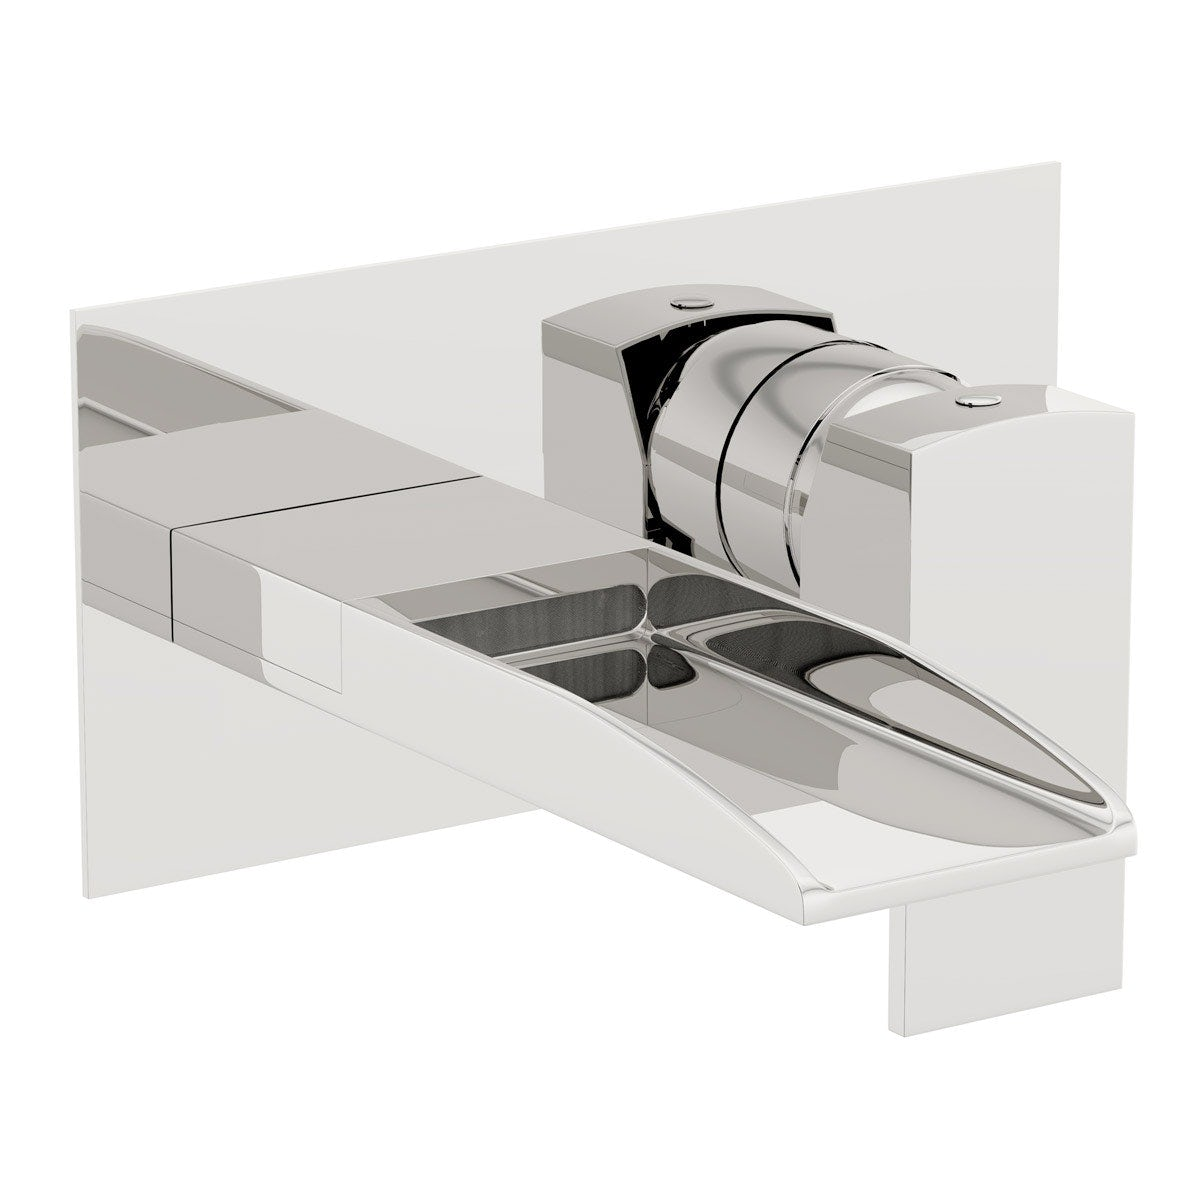 Cooper wall mounted bath mixer tap